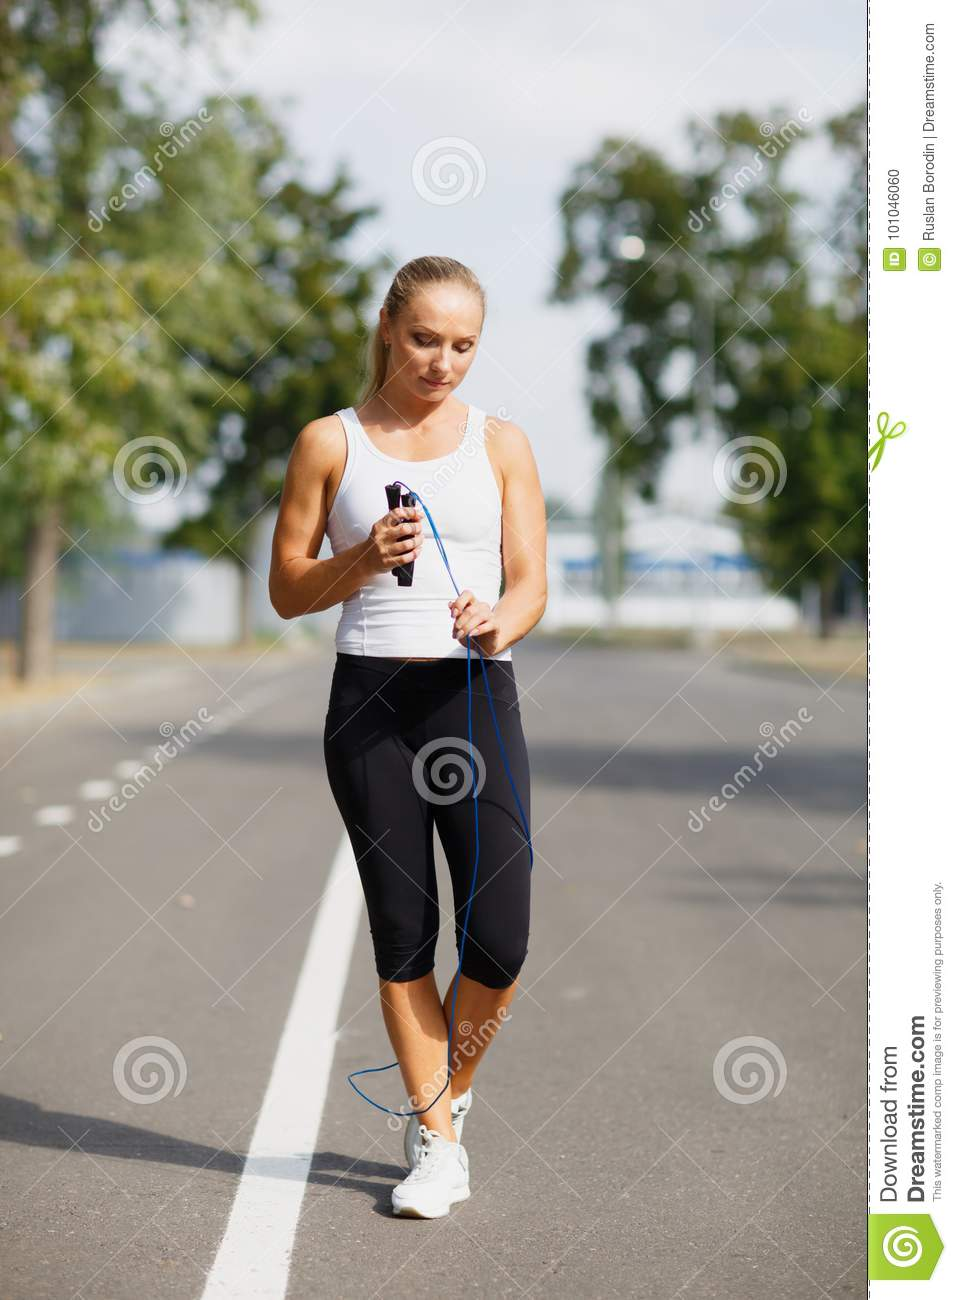 Beautiful girl with a jumping rope. Sports woman jumping on a park background. Active lifestyle concept.